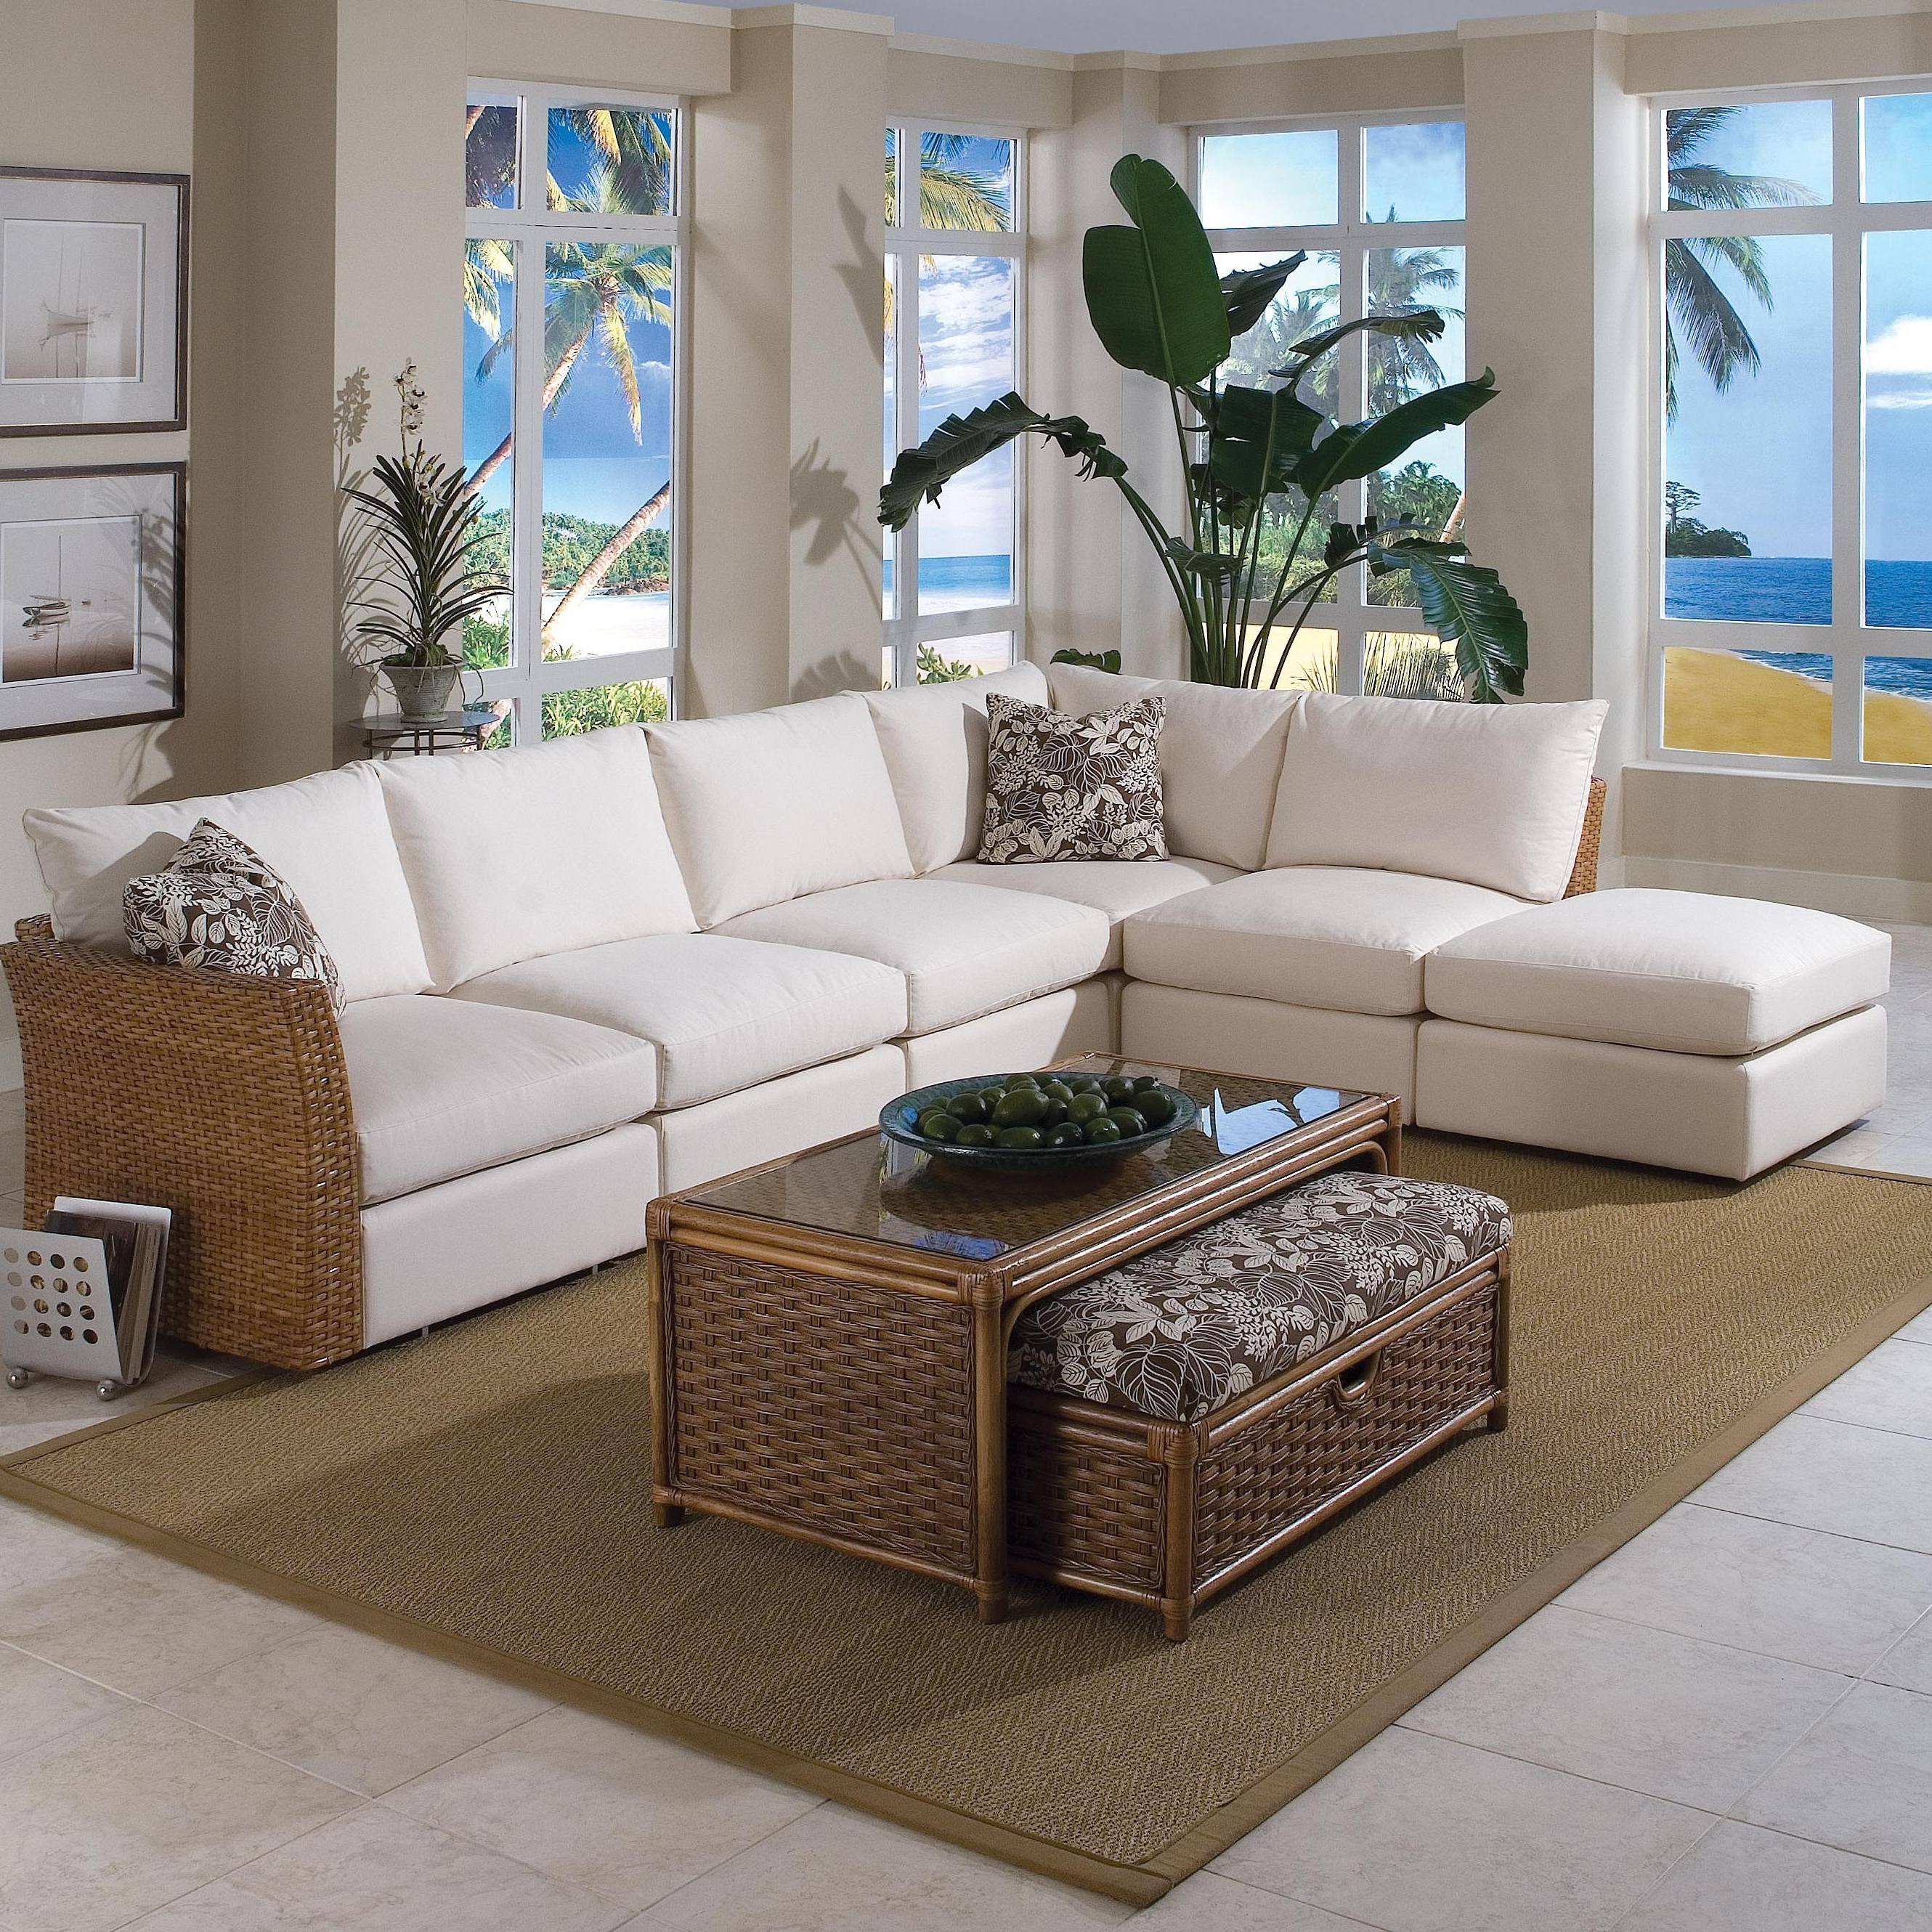 Fashionable Kanes Sectional Sofas Within Braxton Culler Grand Water Point Tropical Sectional Sofa With Two (View 2 of 15)